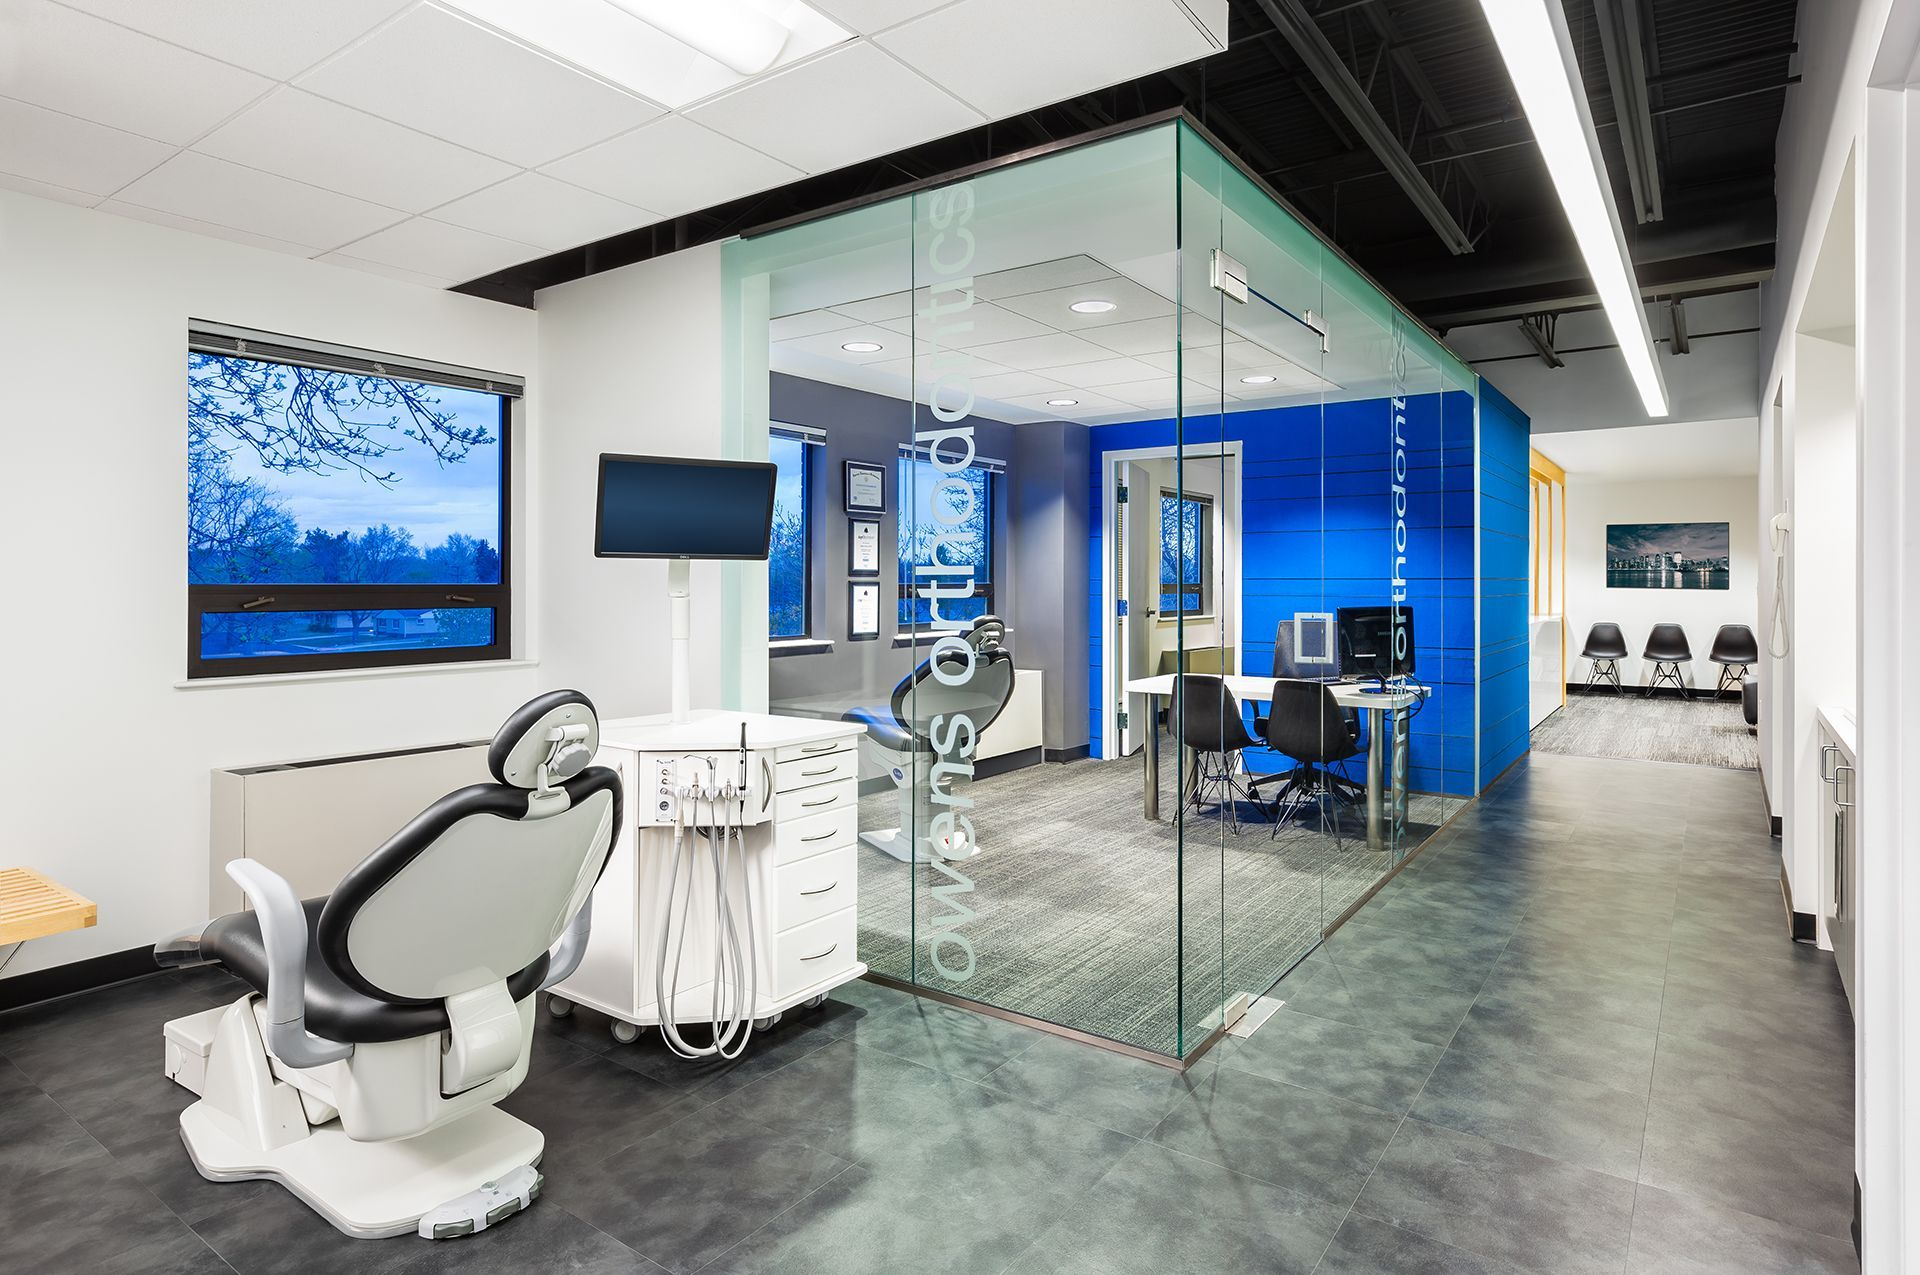 owens orthodontics - consult - awesome glass-enclosed consult